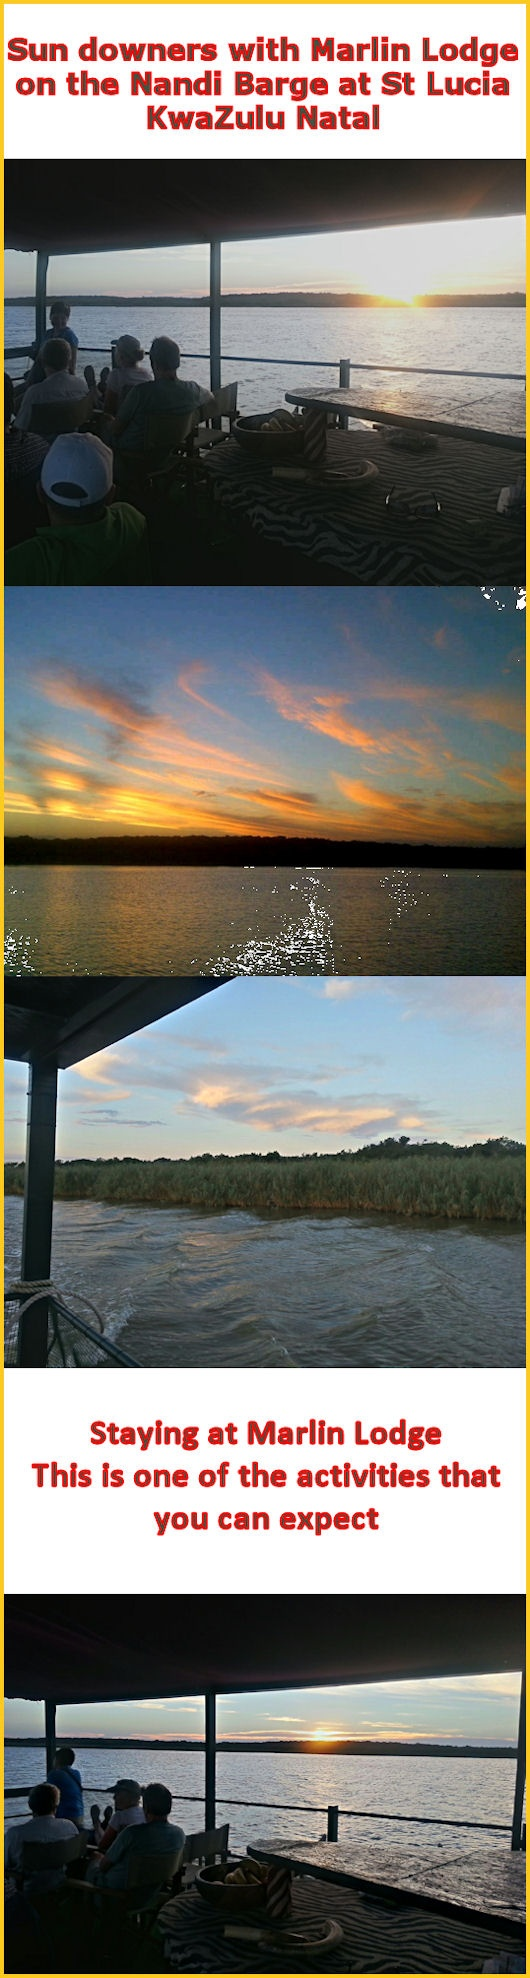 When staying at Marlin Lodge in StLucia, KwaZulu Natal you can have Sun downers on a cruise in the estuary on the Nandi Barge